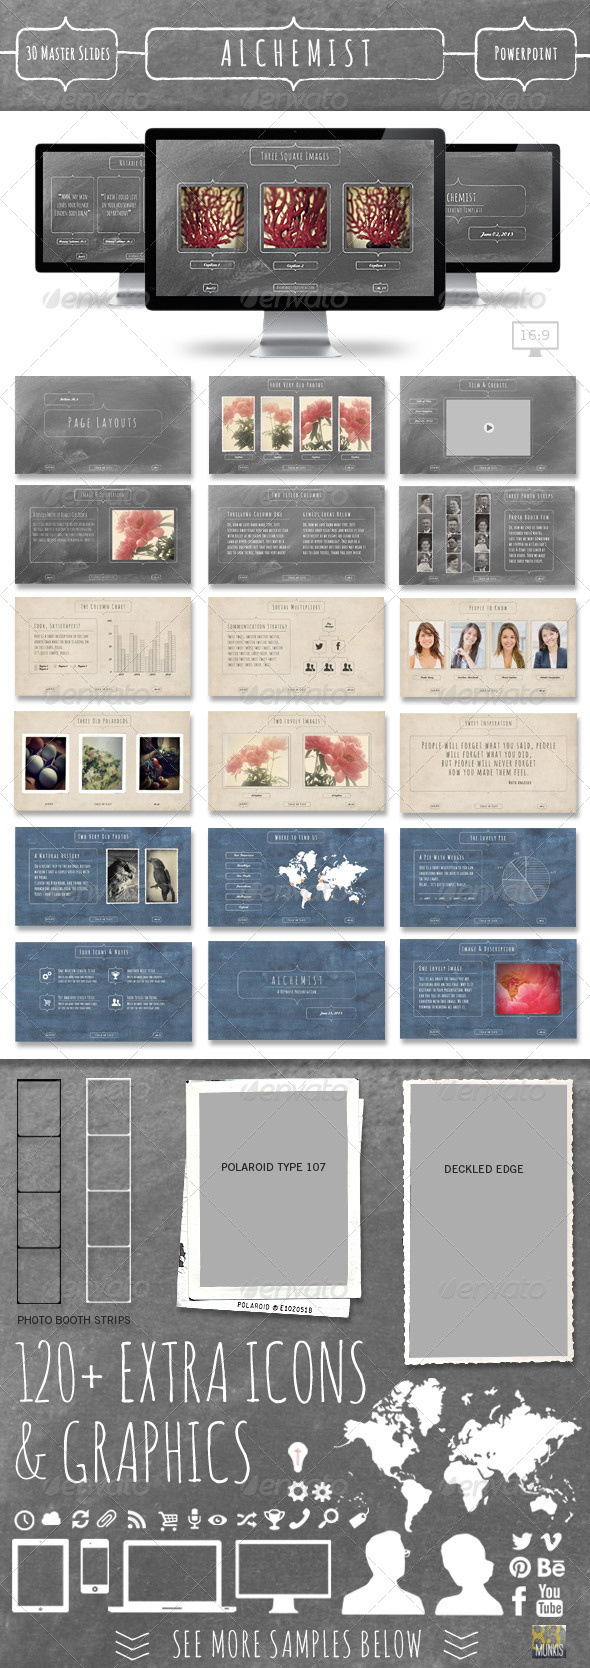 Alchemist Powerpoint Template - Presentation Templates